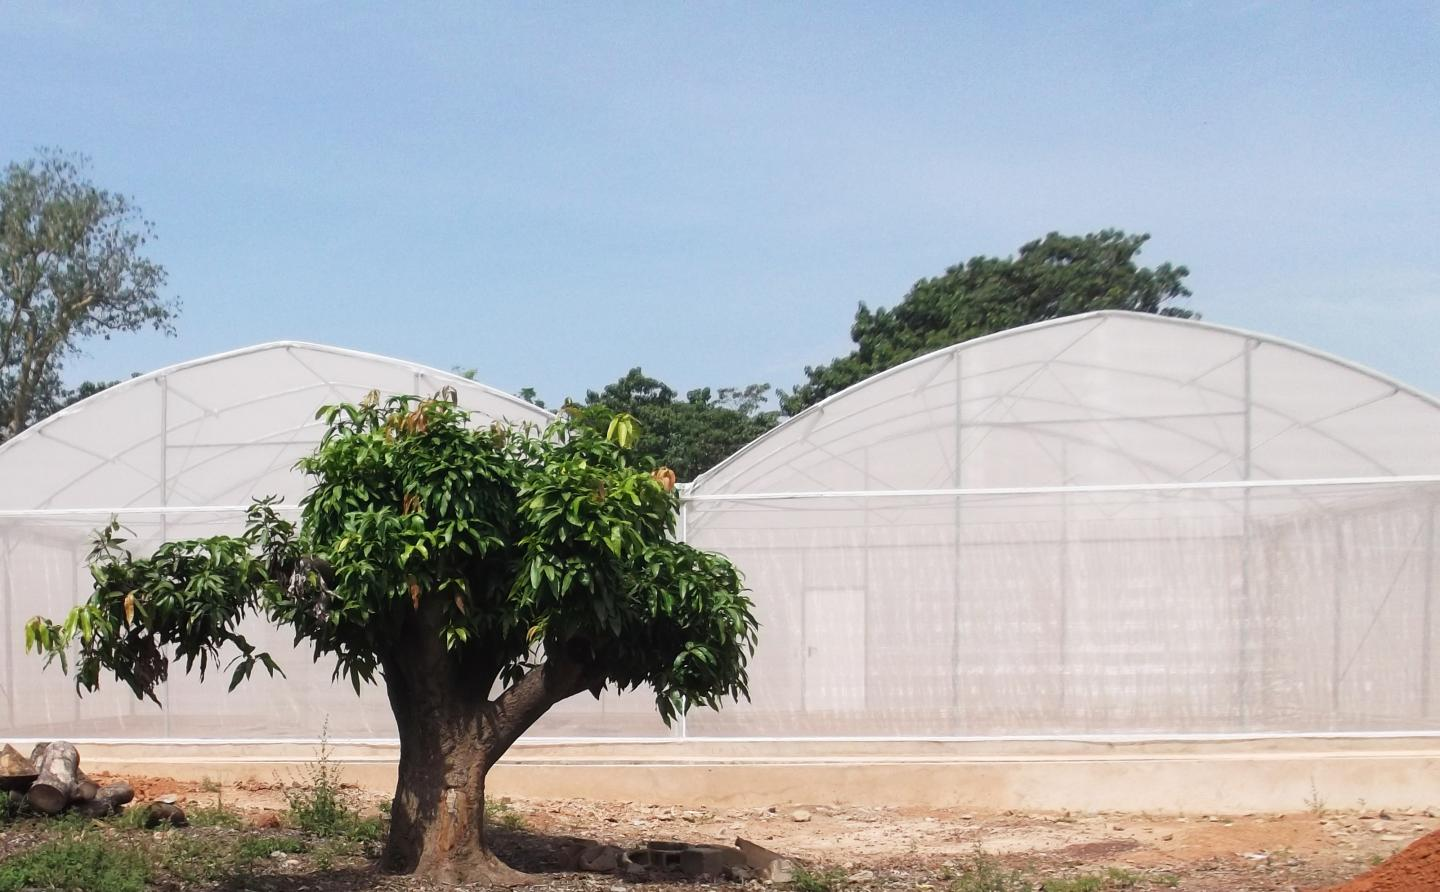 MosquitoSphere, a roughly 6,550-square-foot, screened-in structure in Burkina Faso, West Africa, was designed to simulate a village setting and included plants, huts, small pools of water and a food source for mosquitoes. / Credit: Etienne Bilgo